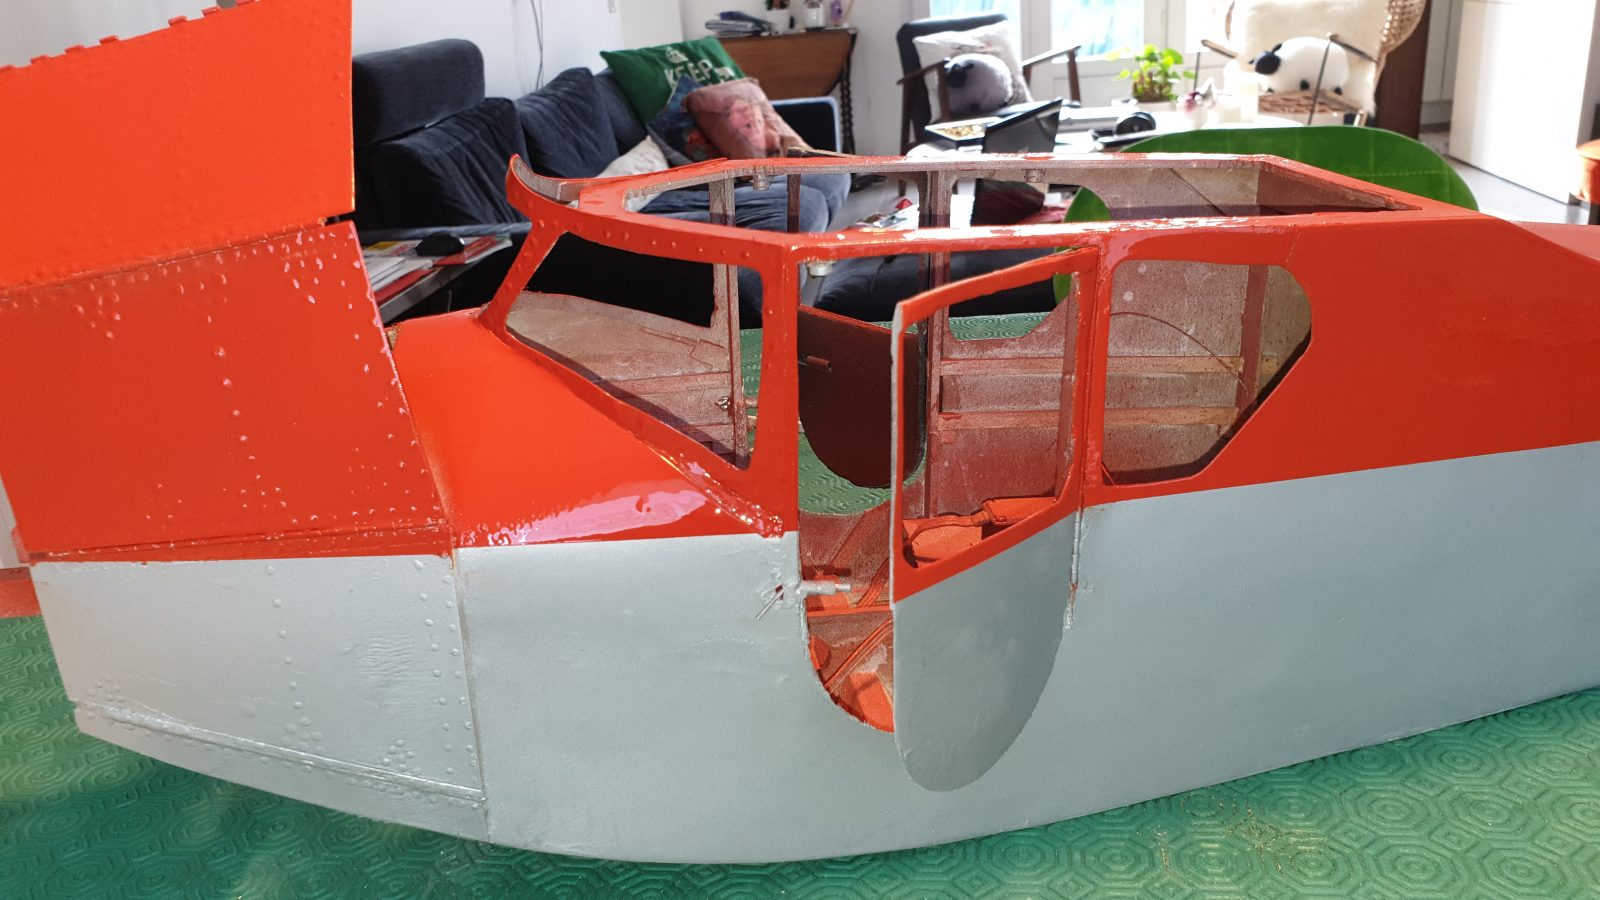 You are currently viewing Peinture du fuselage terminée